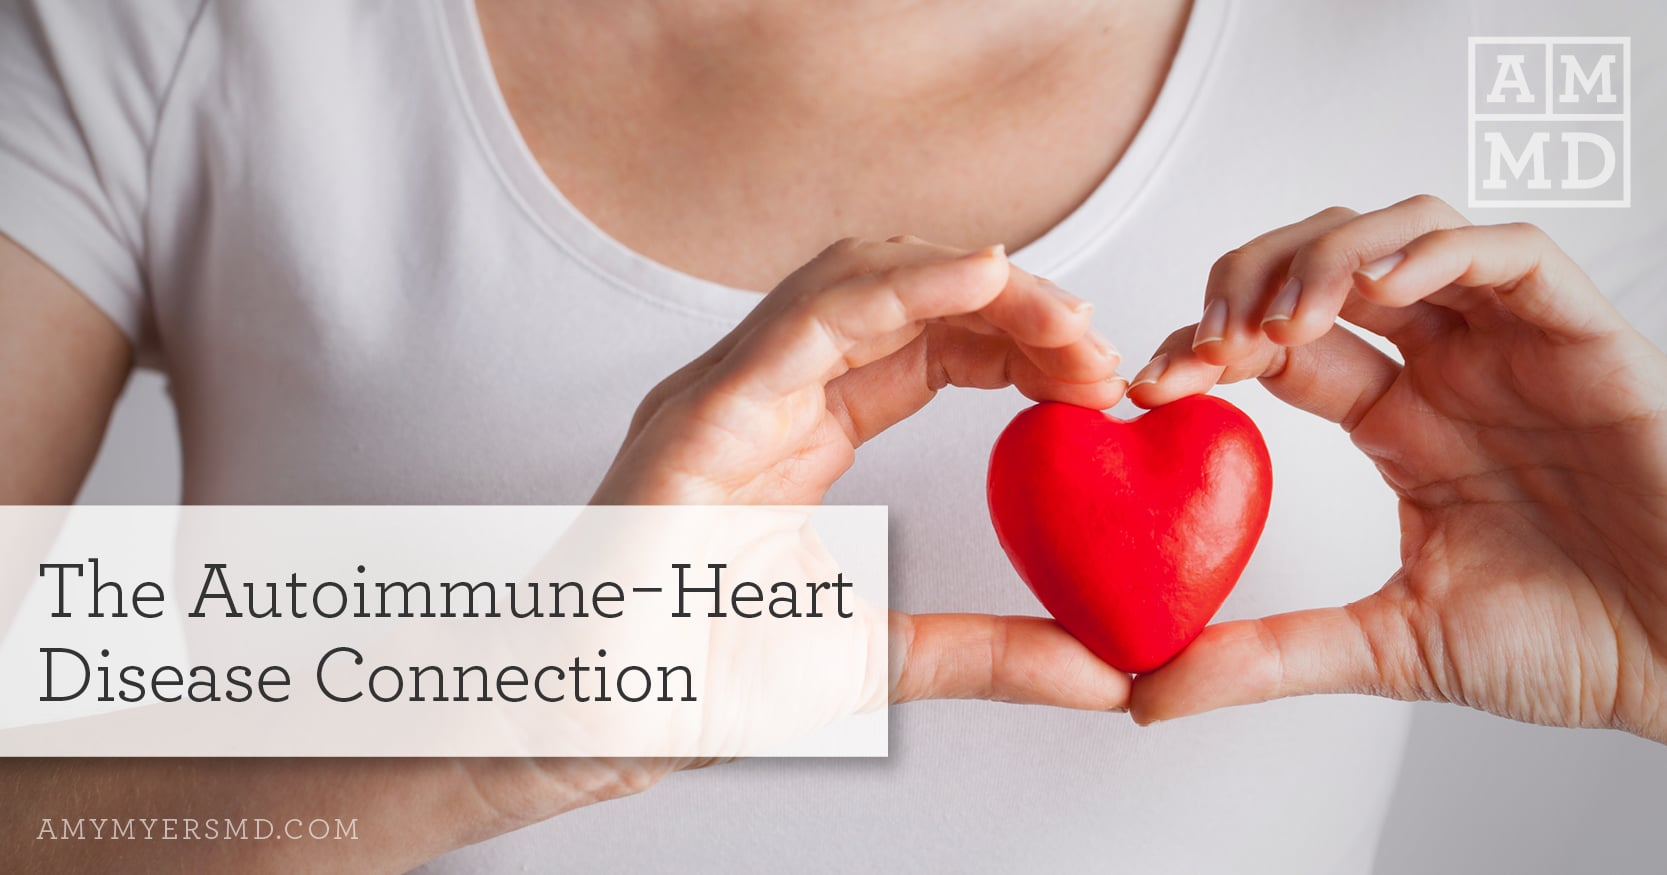 The Autoimmune-Heart Disease Connection - A woman Holding a Heart Figure - Featured Image - Amy Myers MD